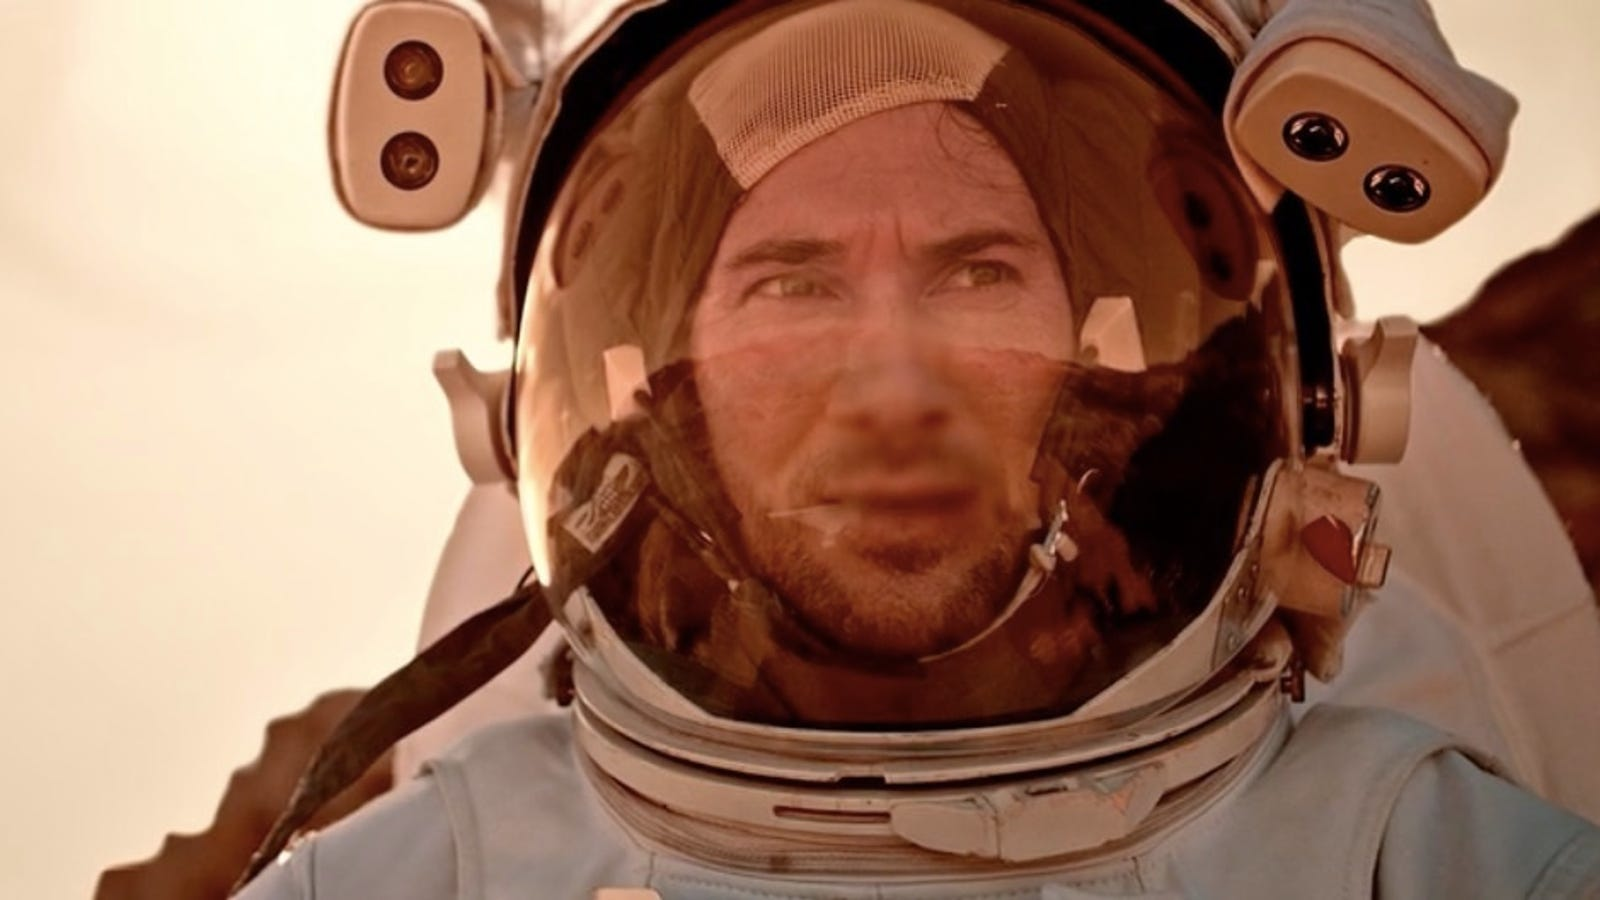 An Astronaut Faces His Worst Fears in Impressive Scifi Short Icarus